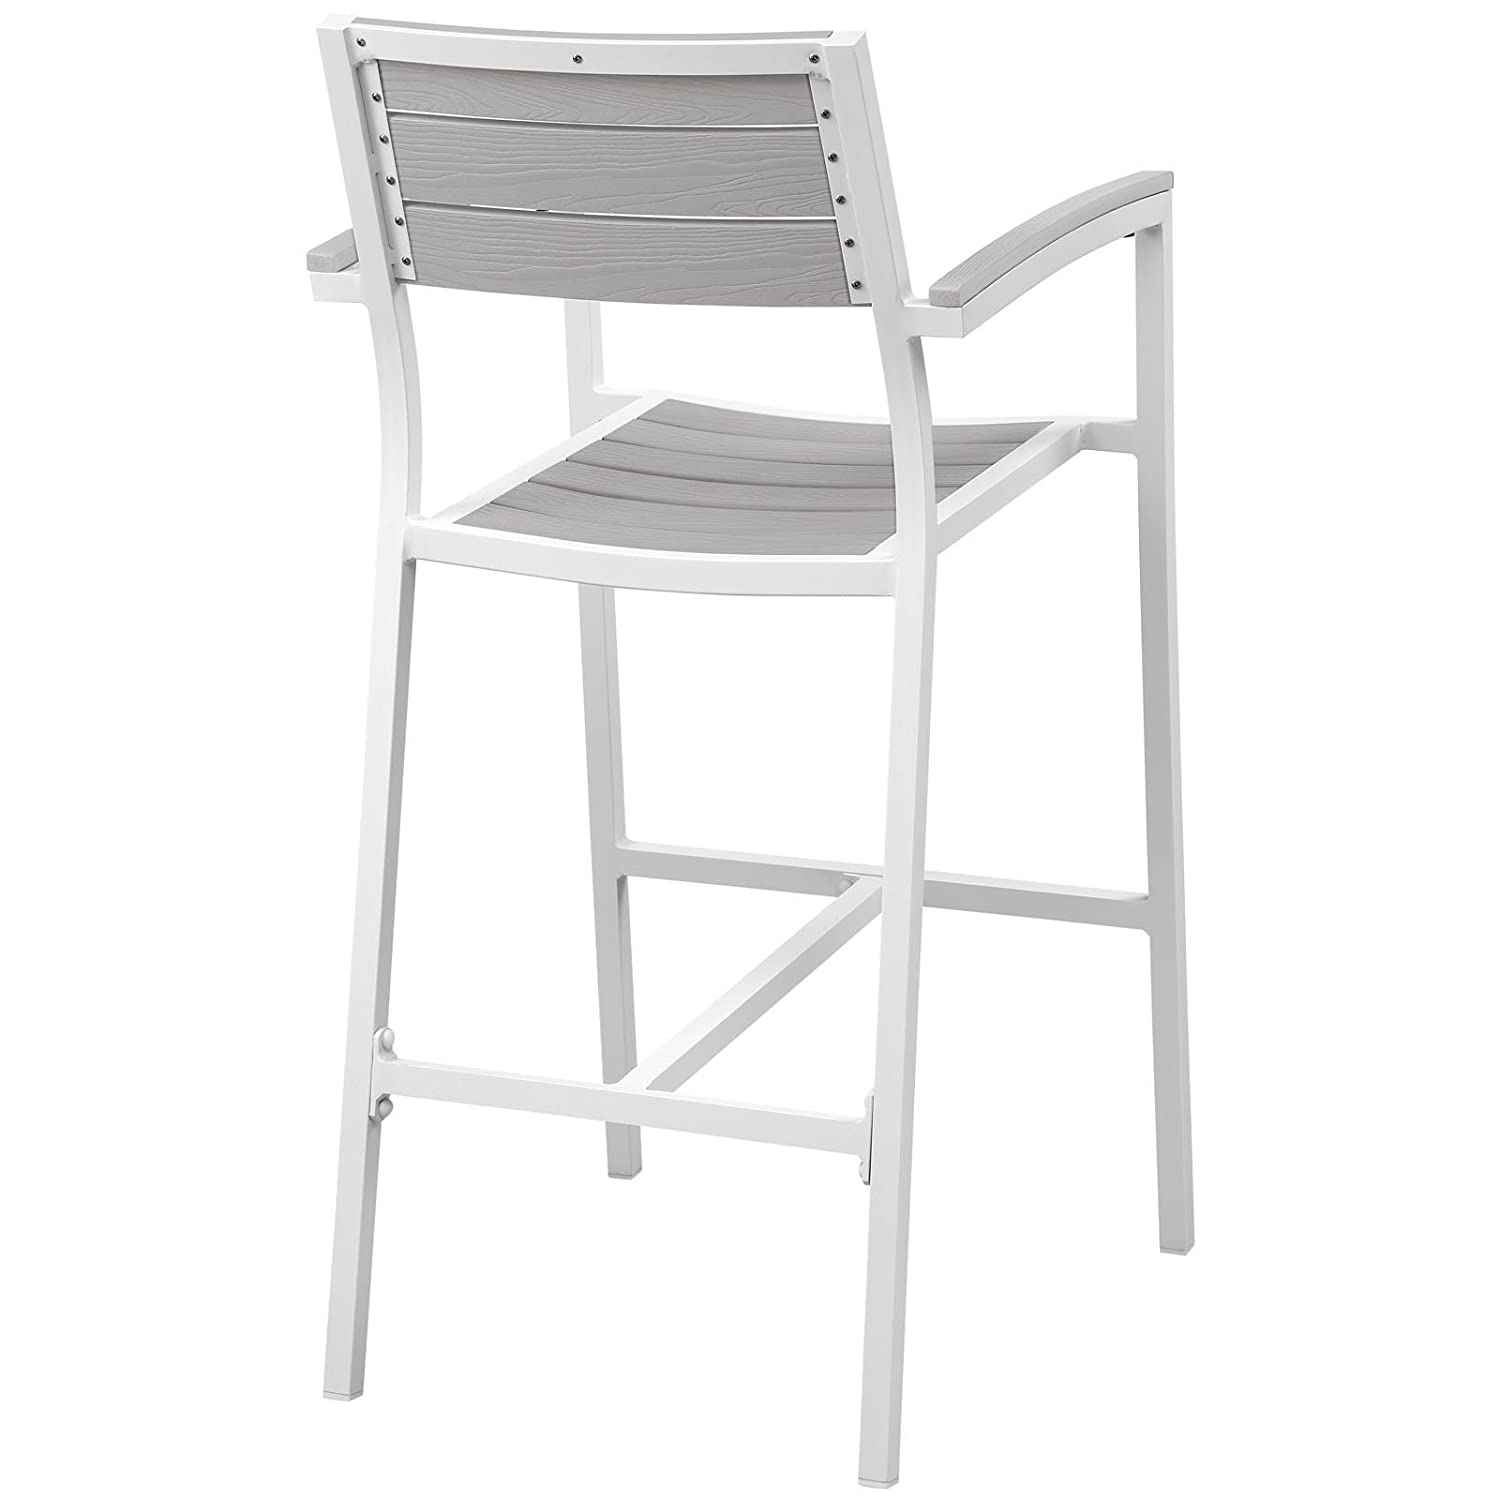 Modway EEI-1510-WHI-LGR Maine Aluminum Outdoor Patio Bar Stool, One, White Light Gray